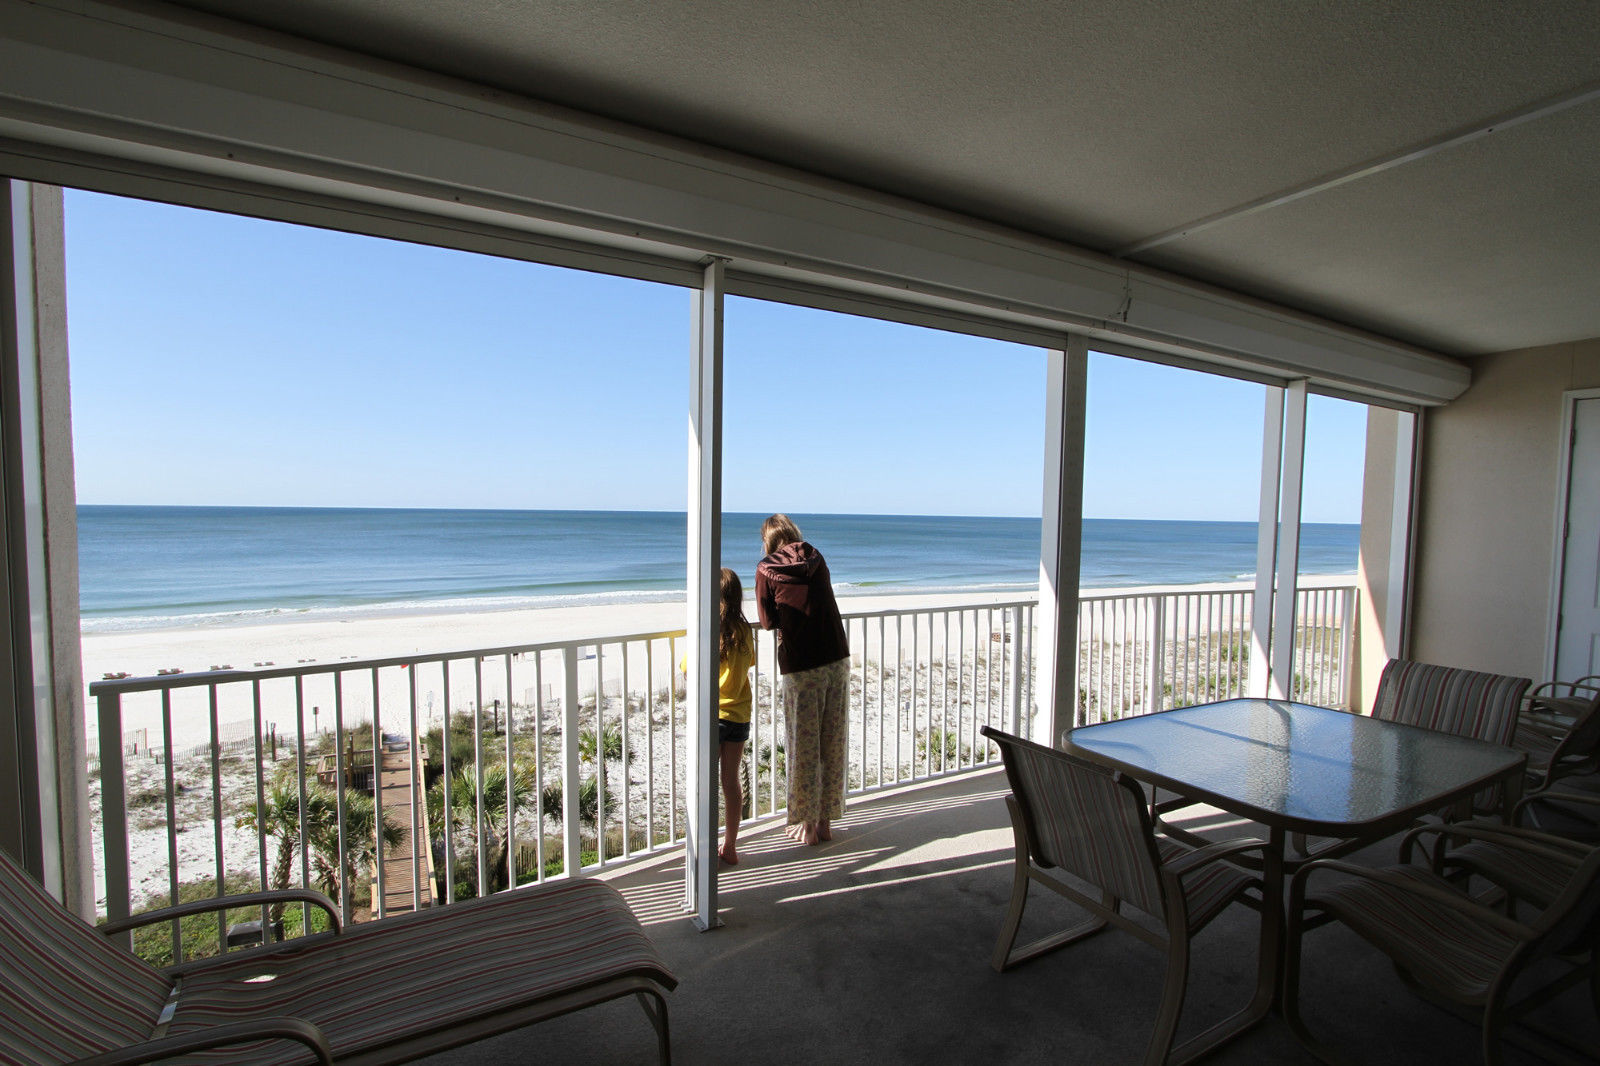 orange beach condo view from balcony